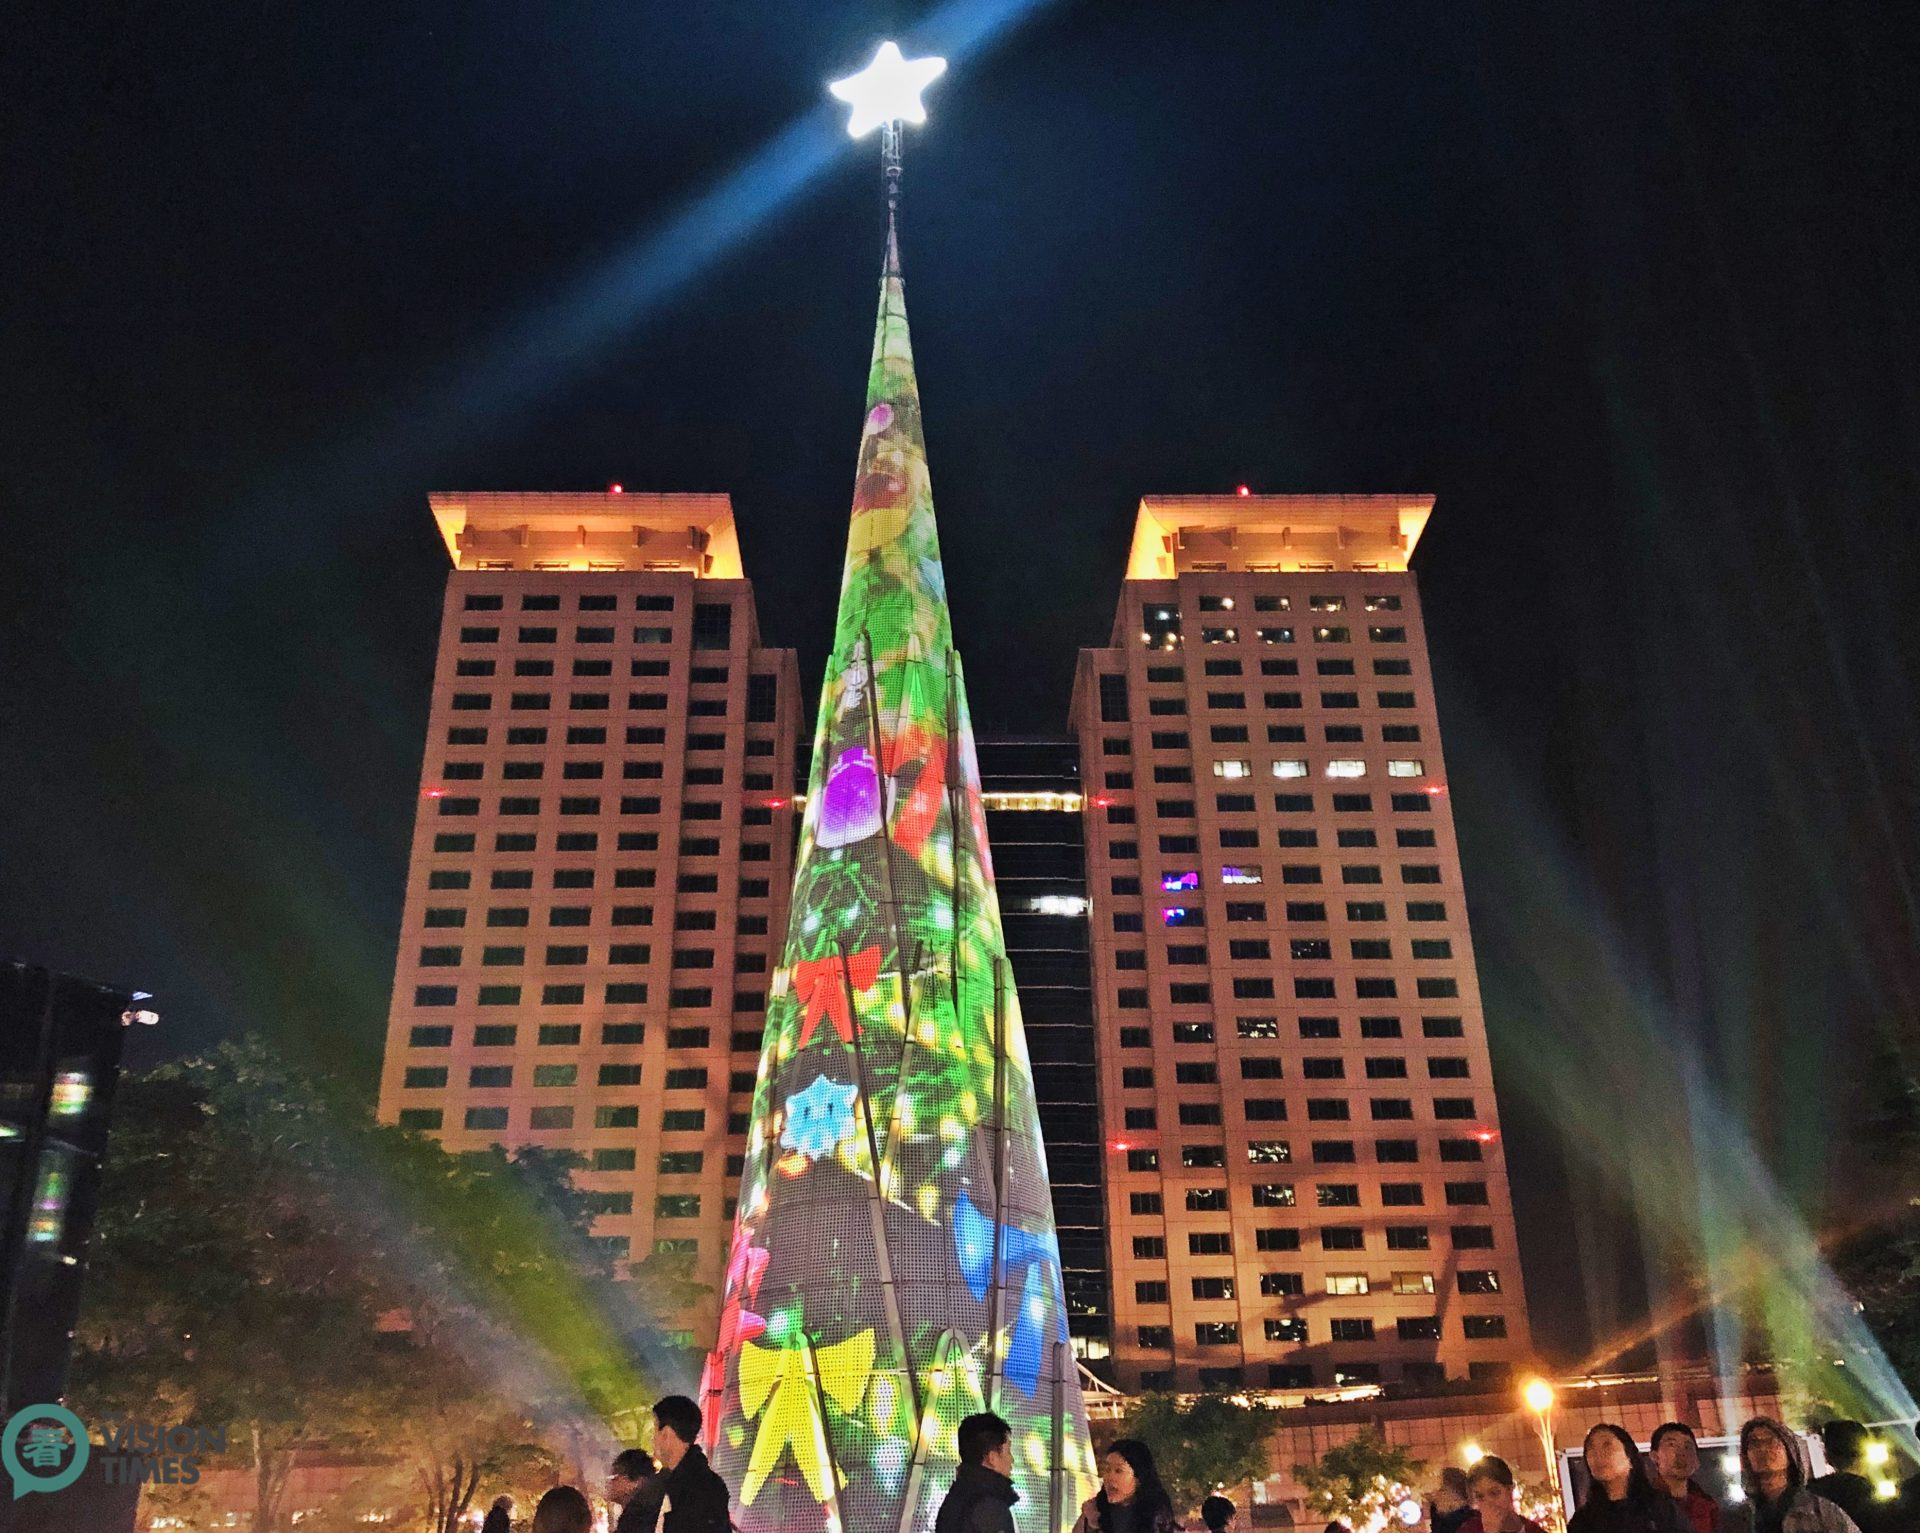 The eye-catching giant sphere-shaped LED Christmas tree was recommended by Harper's Bazaar Magazine as one of the 19 most amazing Christmas trees in the world. (Image: Billy Shyu / Vision Times)